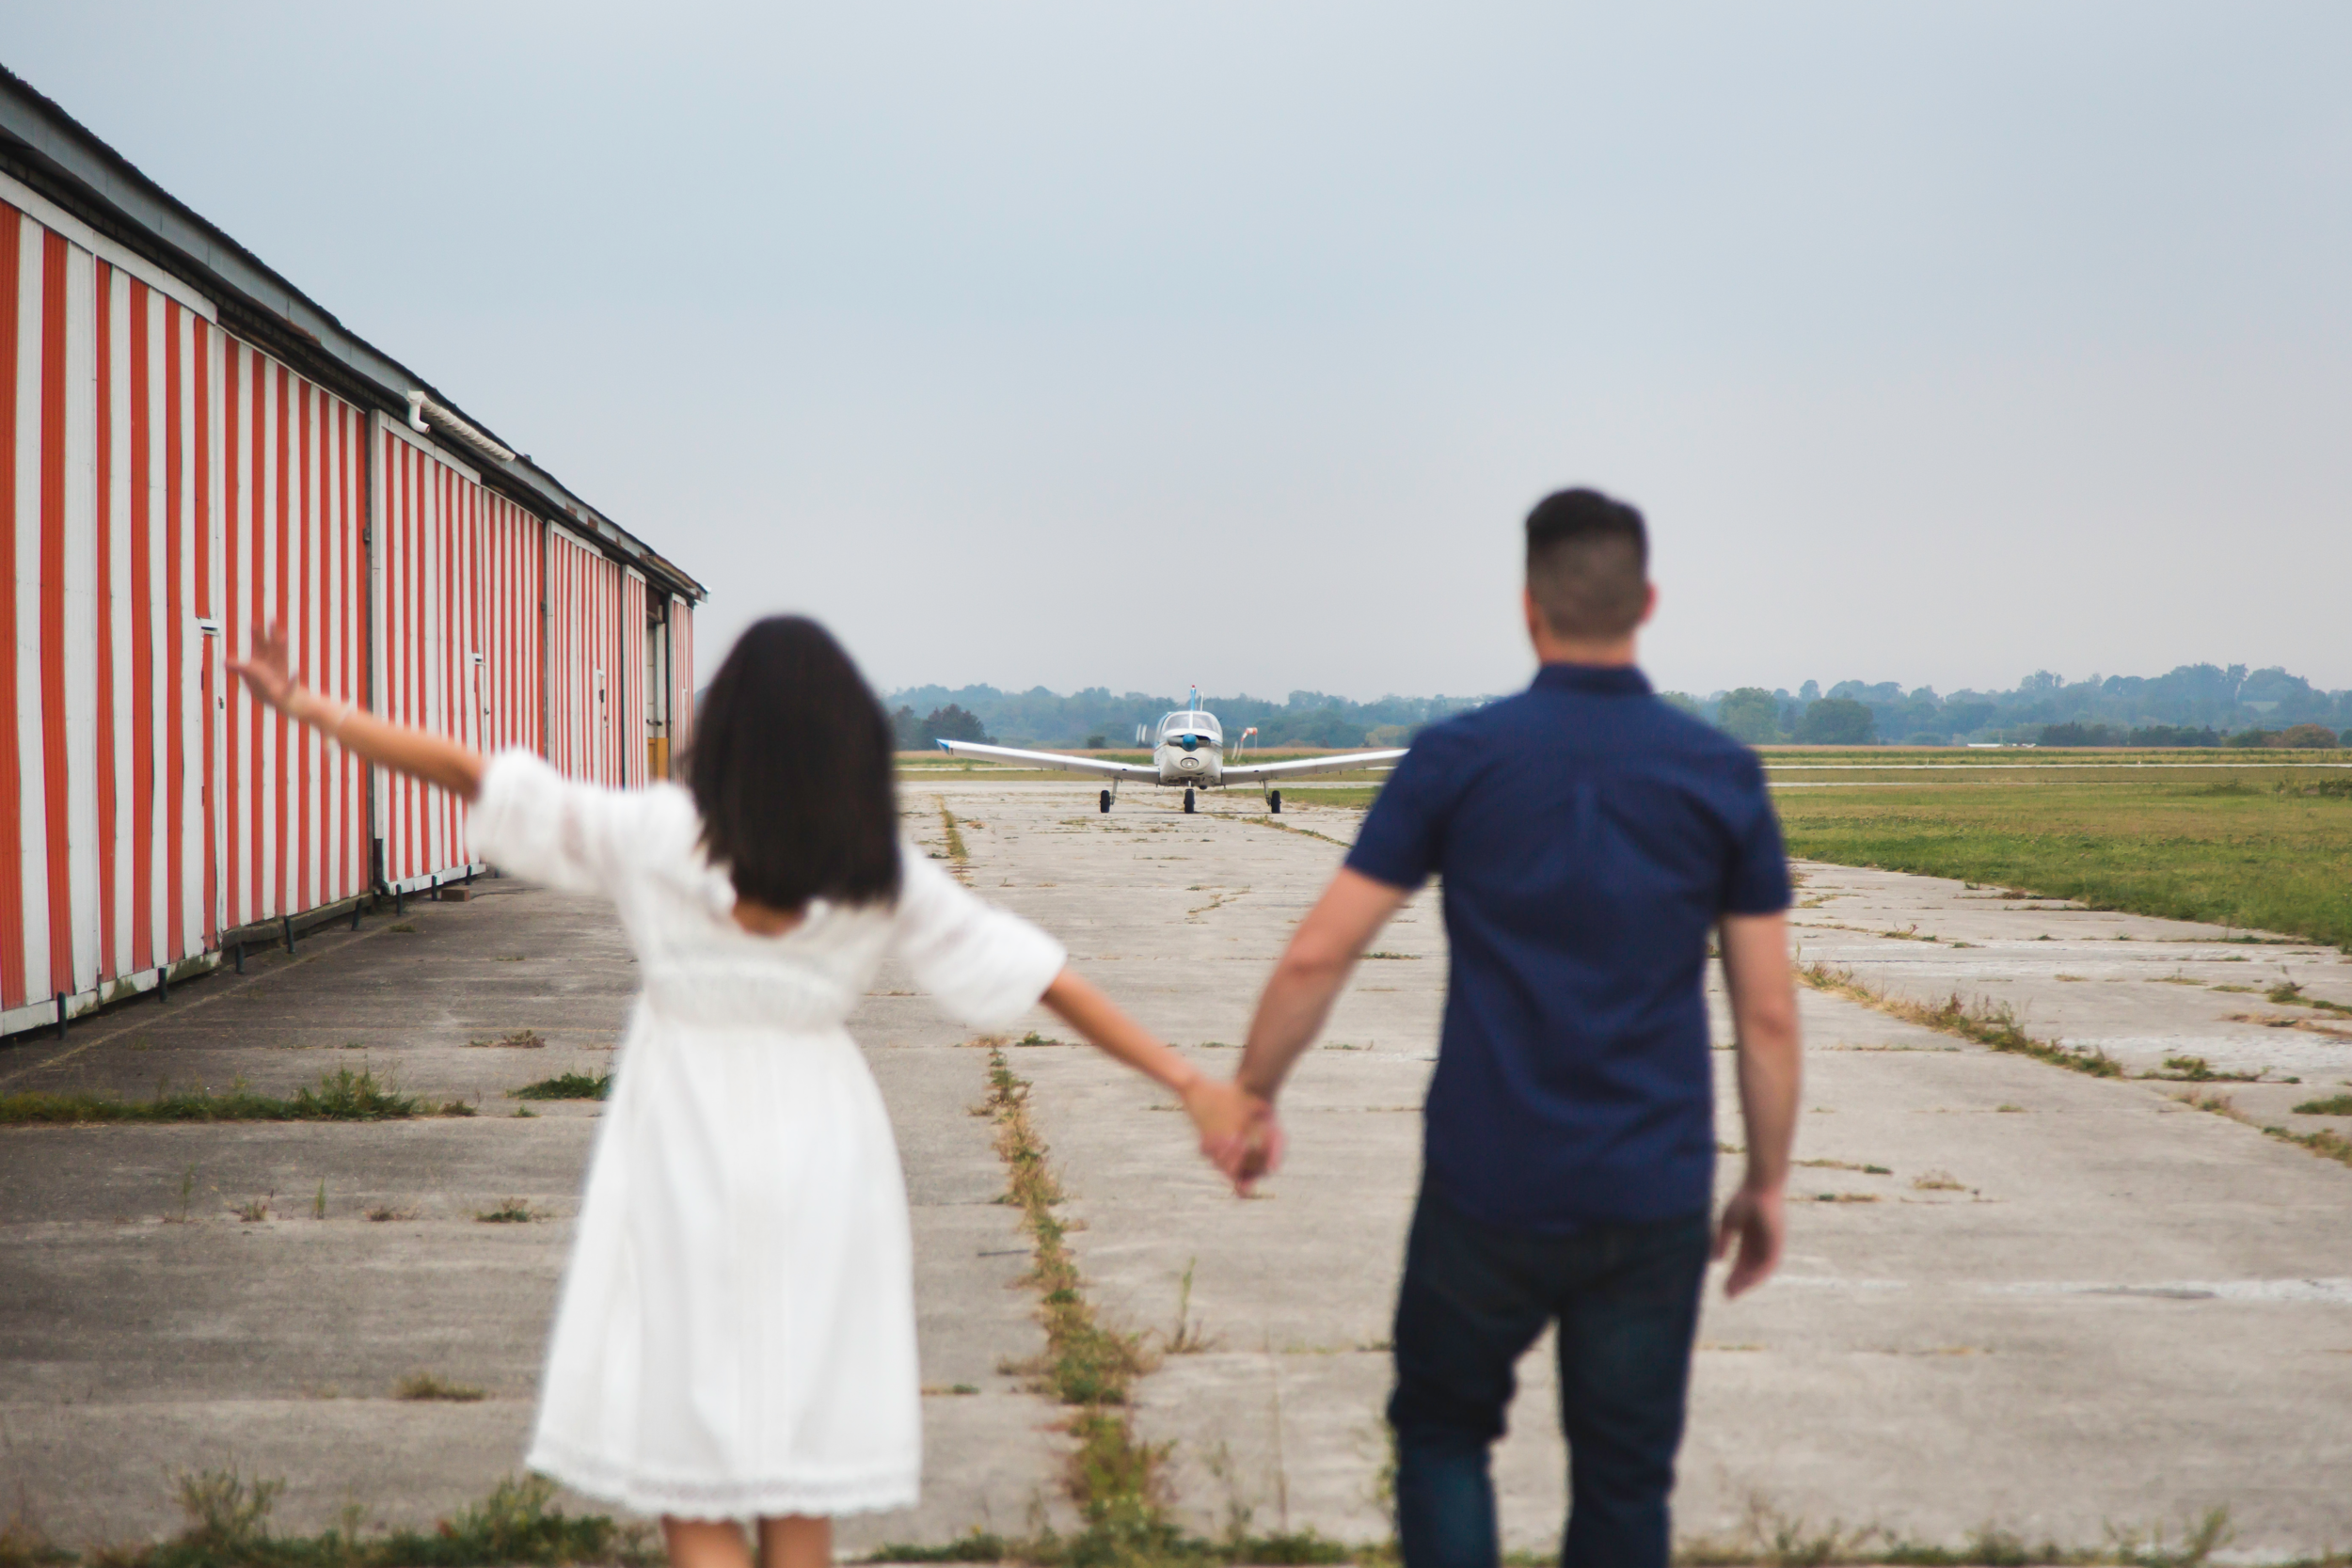 Engagement-Session-Hamilton-Burlington-Oakville-Toronto-Niagara-Wedding-Photographer-Engaged-Photography-Brantford-Airport-HamOnt-Engaged-Moments-by-Lauren-Photo-Image-23-1.png